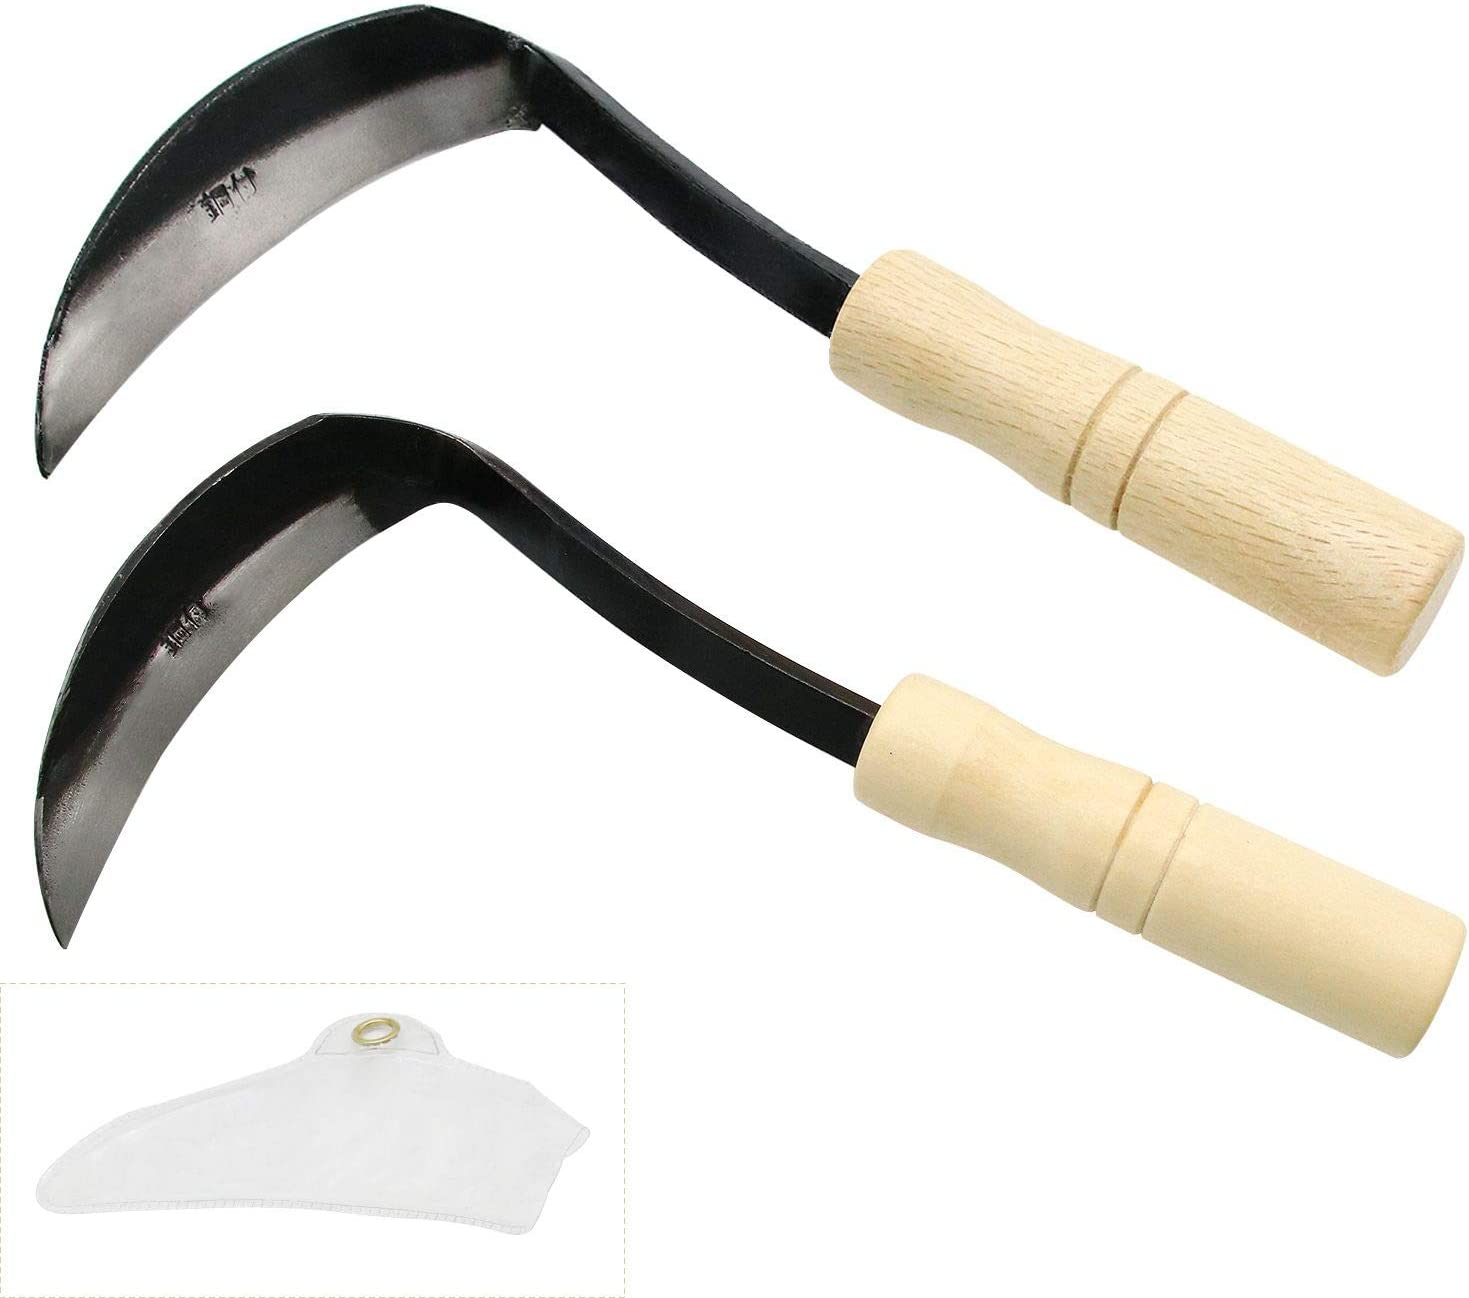 ZOENHOU 2 PCS 10.2 x 4.5 Inch Weeding Sickle with Wooden Handle, Hand Hoe/Sickle Hoe Garden Tool with Very Sharp Steel Blade for Weeding and Cultivating